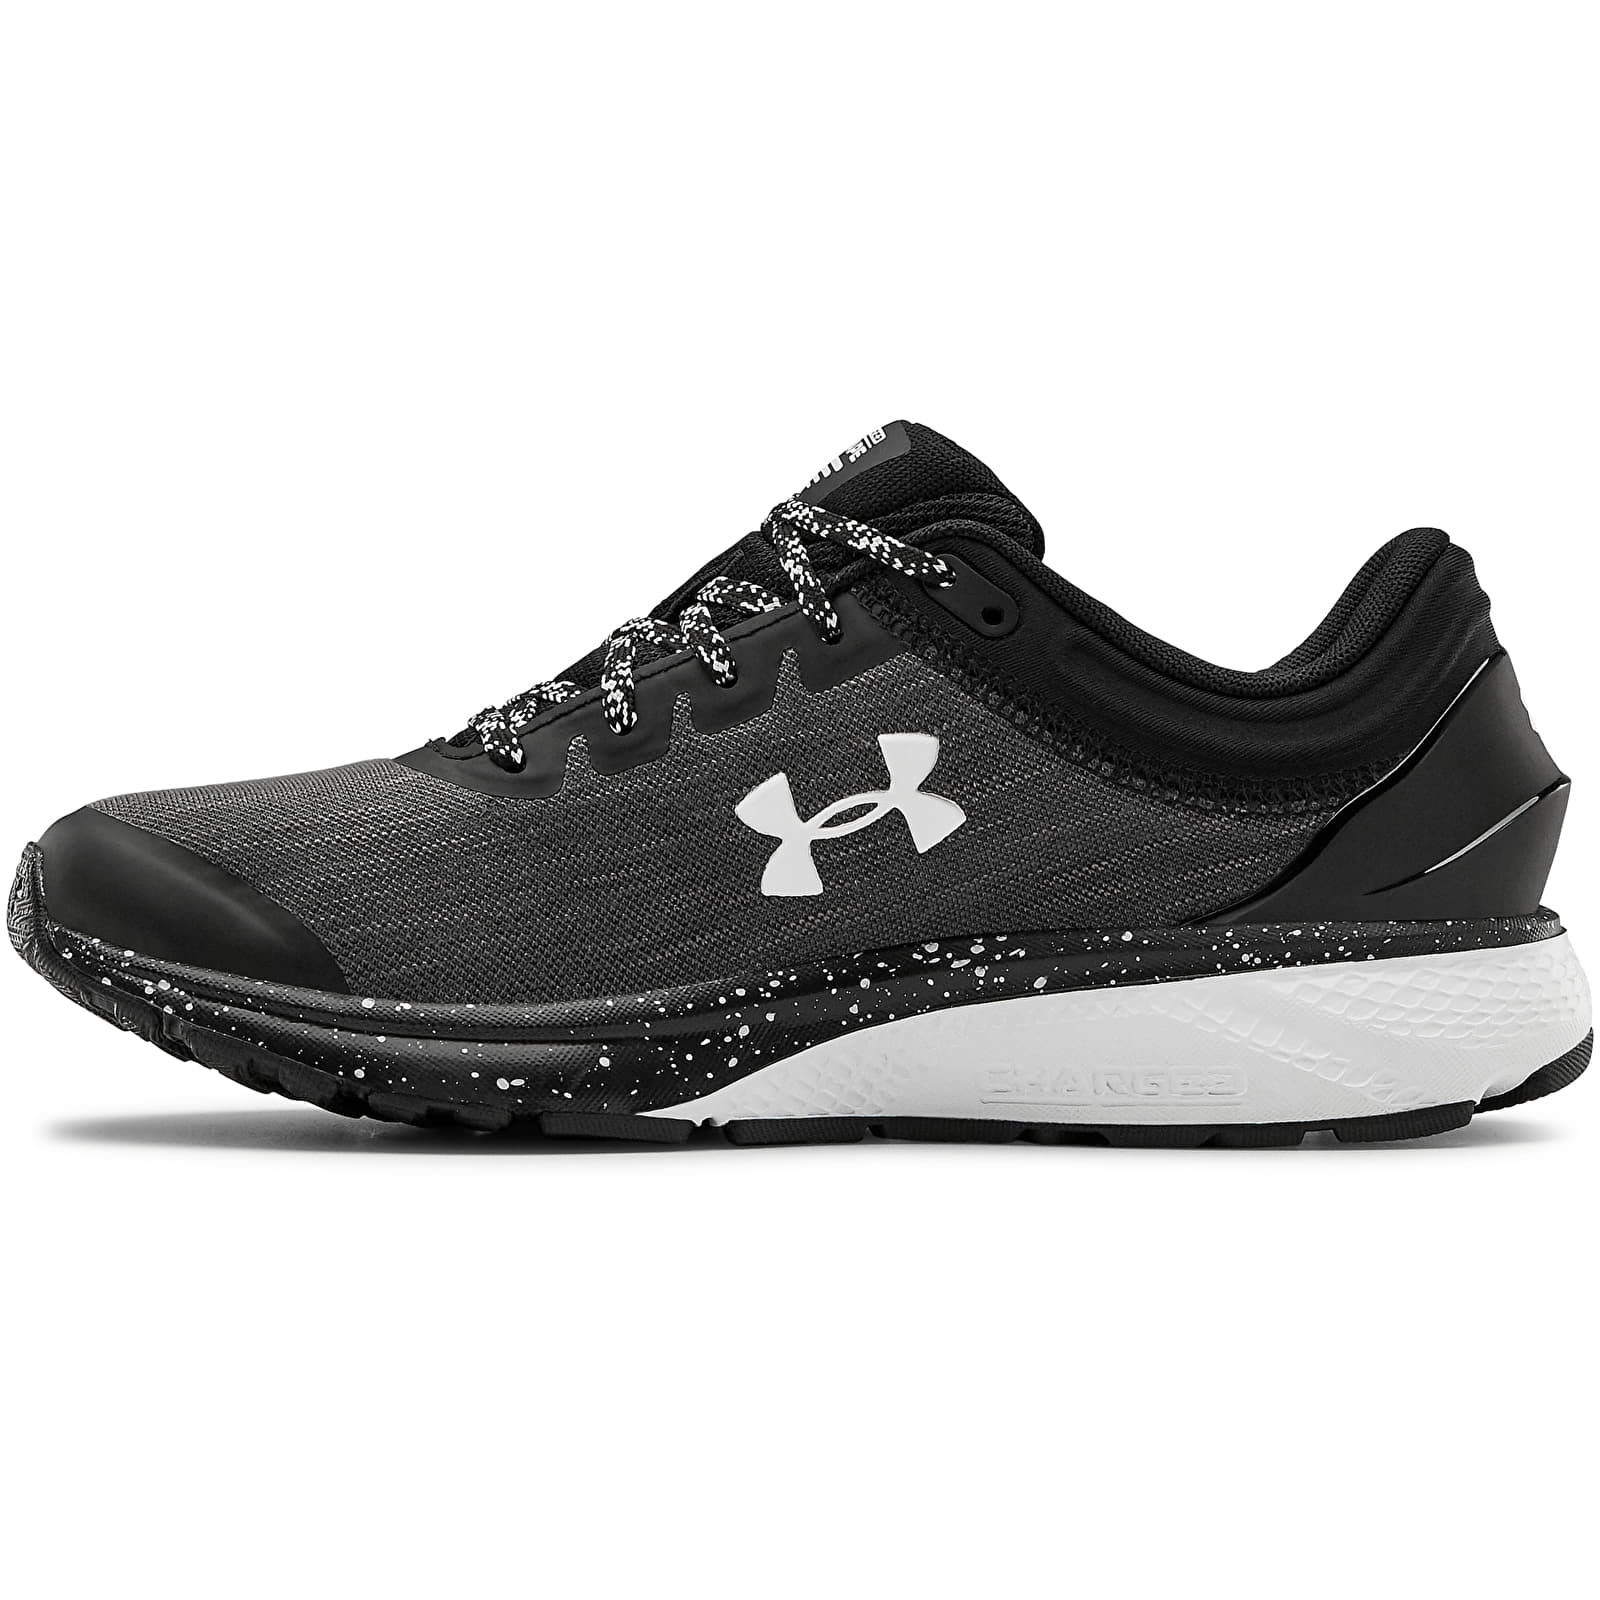 Under Armour W Charged Escape 3 Evo Black 3023880-001